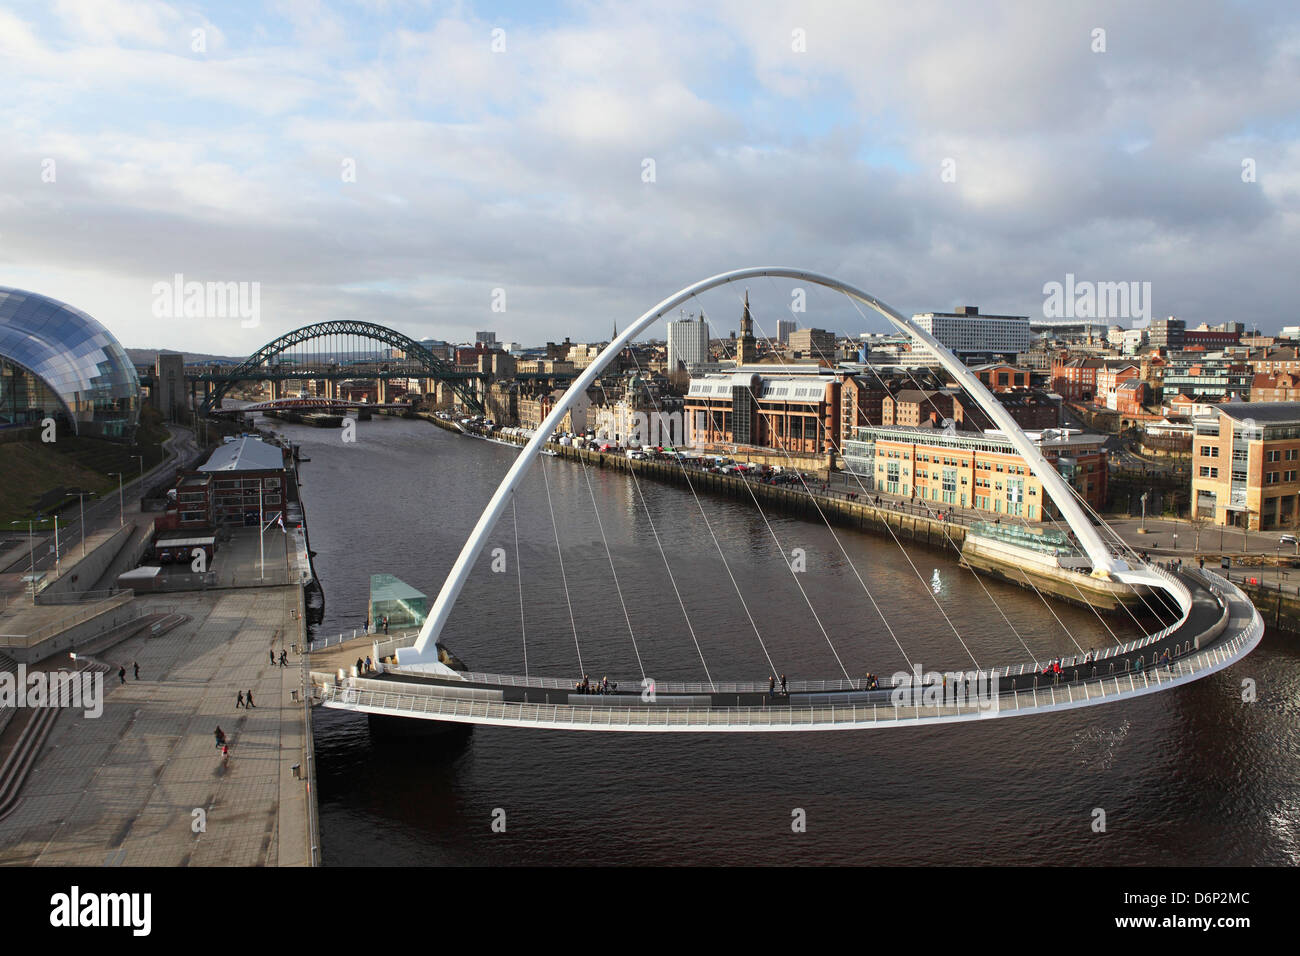 Millennium Bridge and Tyne Bridge span the River Tyne, from Gateshead to Newcastle, Tyne and Wear, England, UK - Stock Image